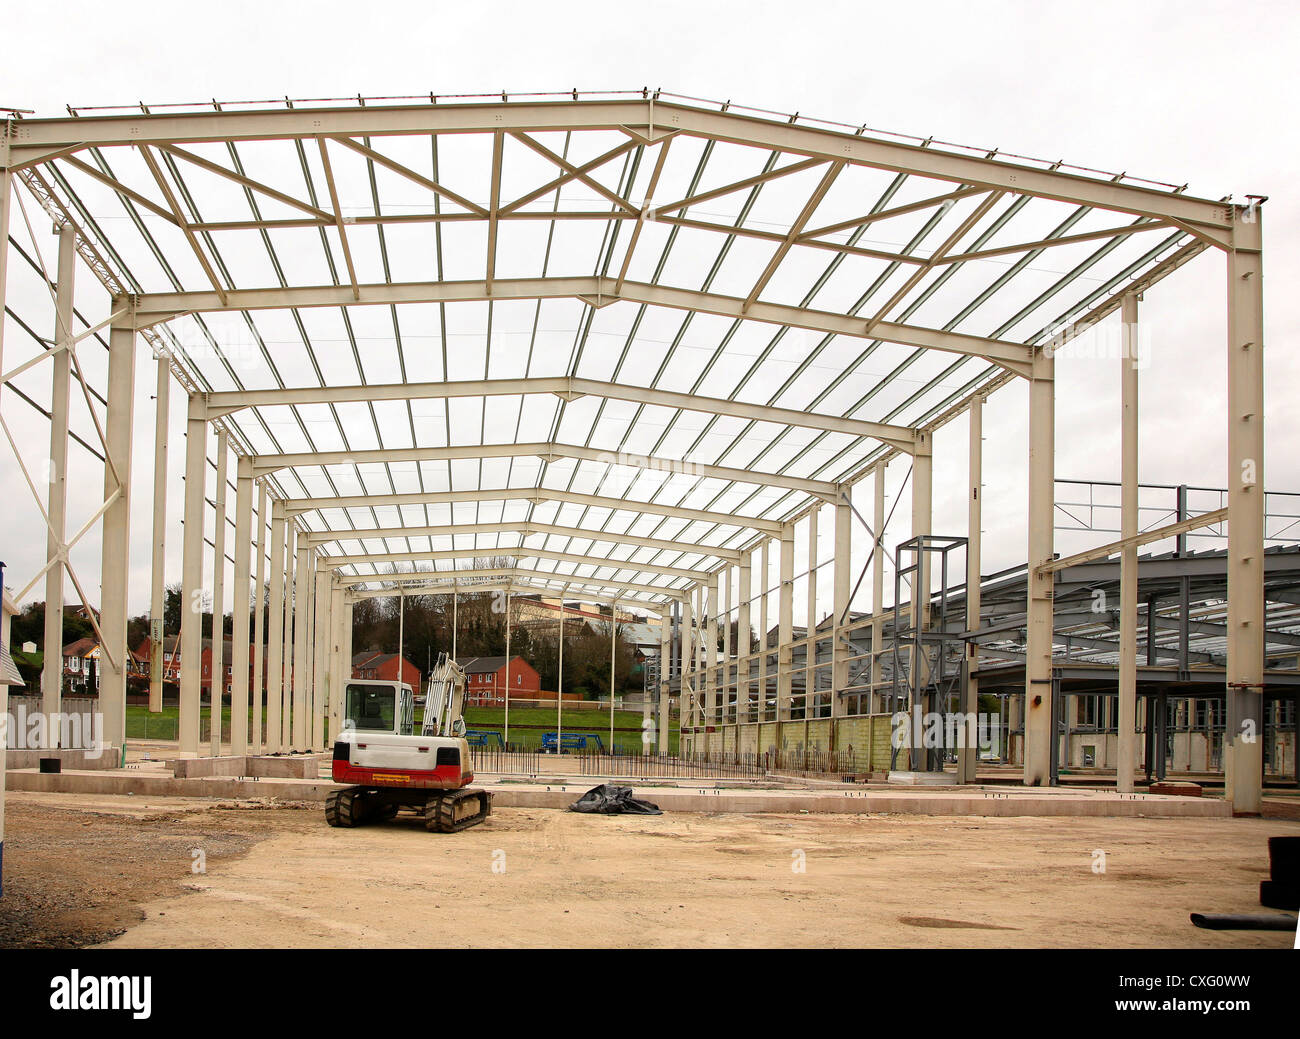 Steel Frame Building Stock Photos & Steel Frame Building Stock ...